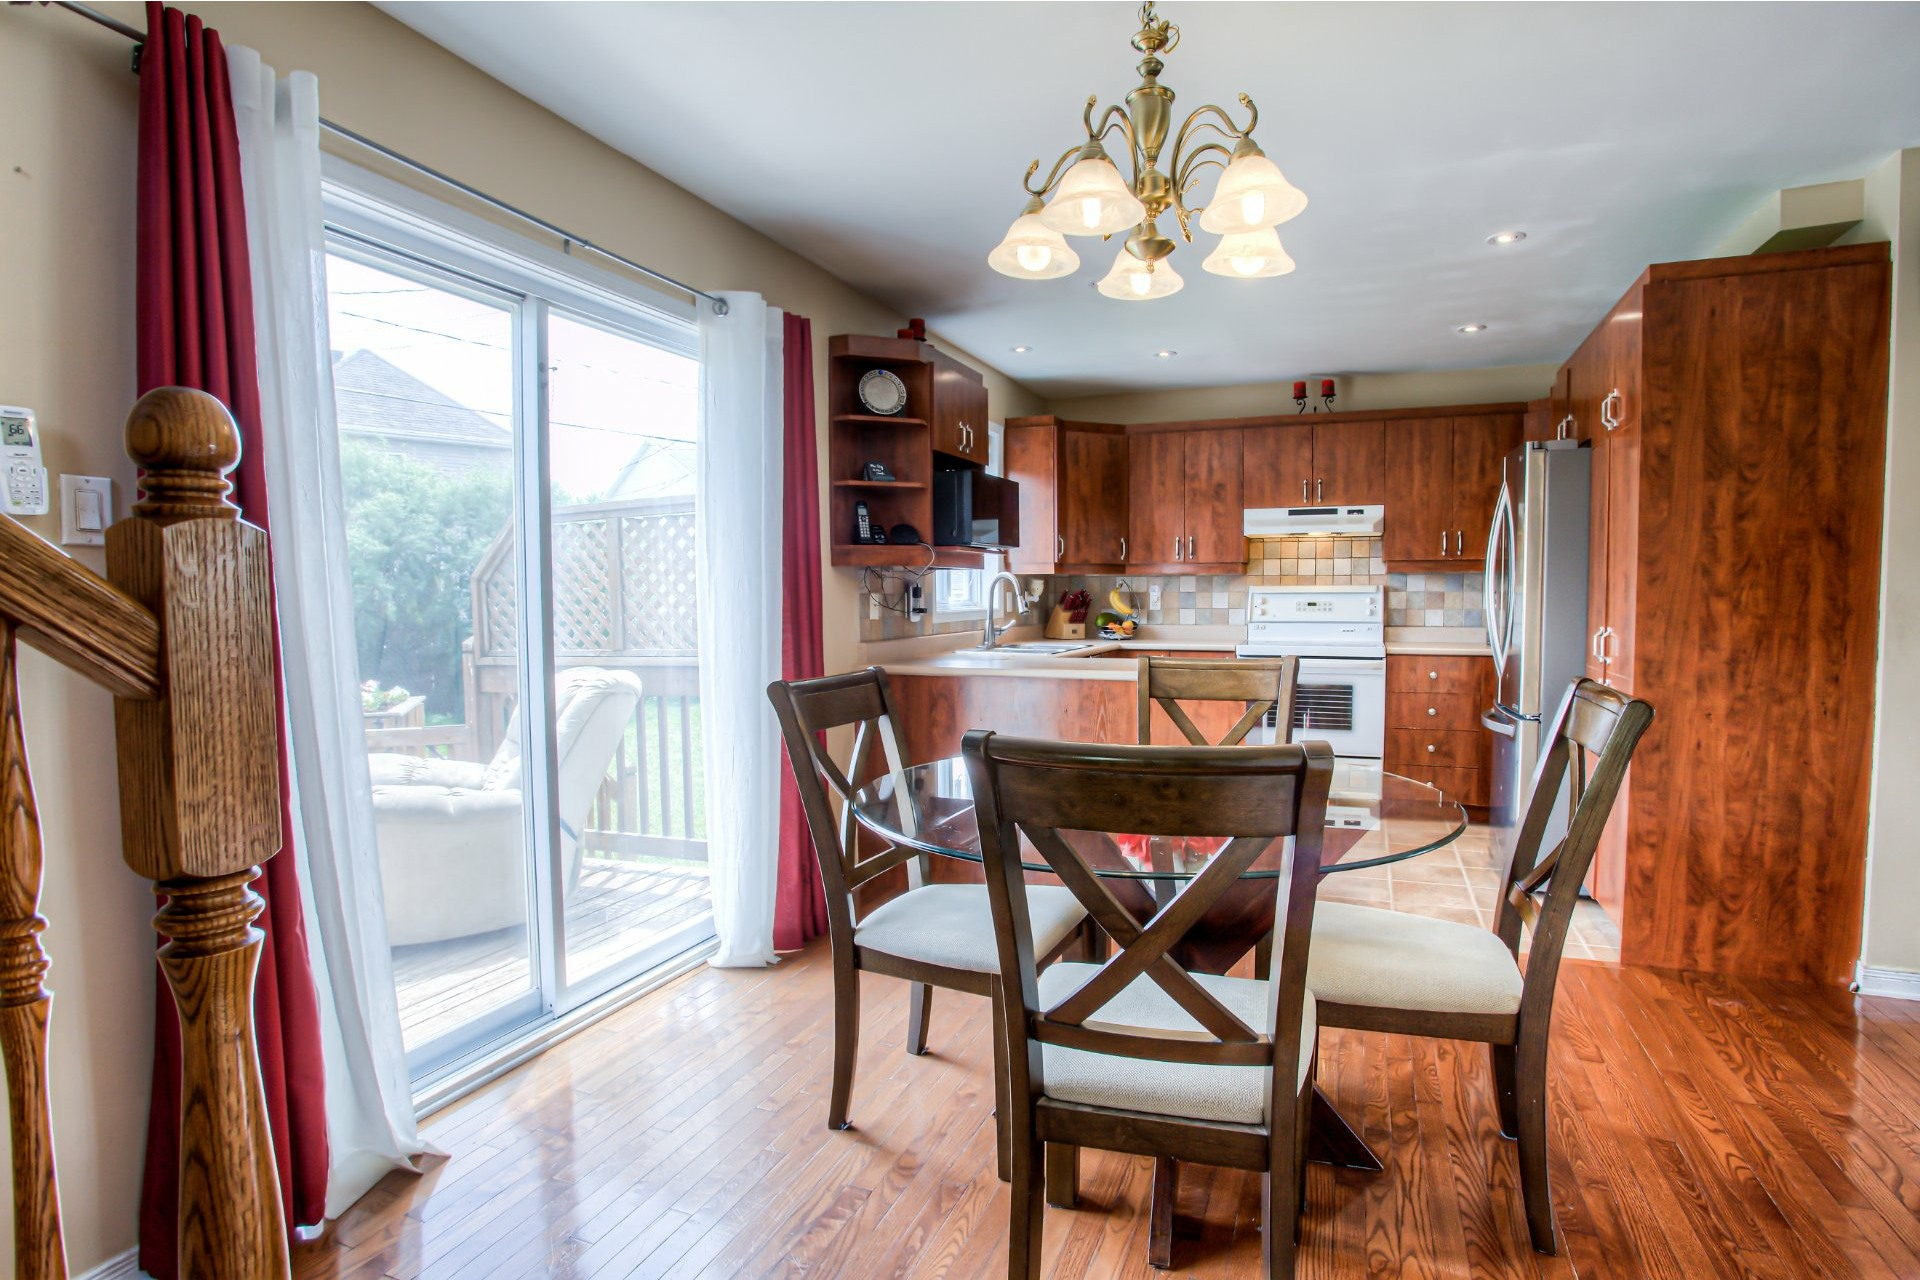 image 7 - House For sale Vaudreuil-Dorion - 7 rooms